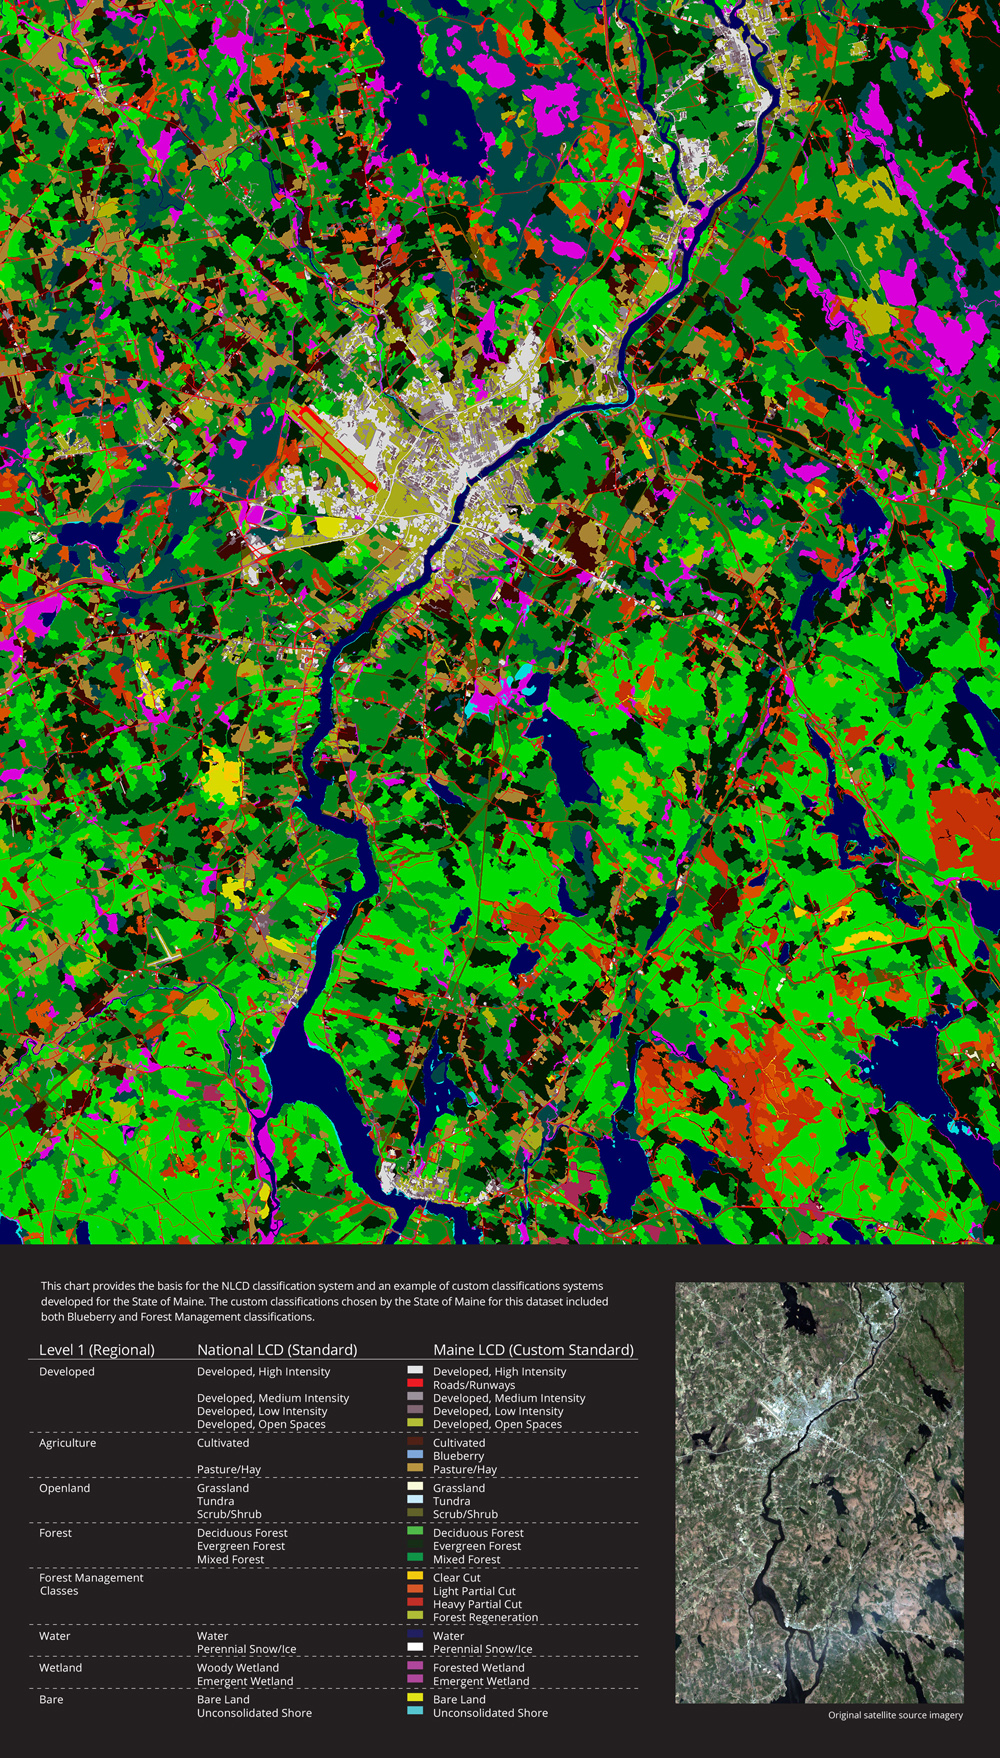 Graphic: Maine Department of Environmental Protection Land Cover Data